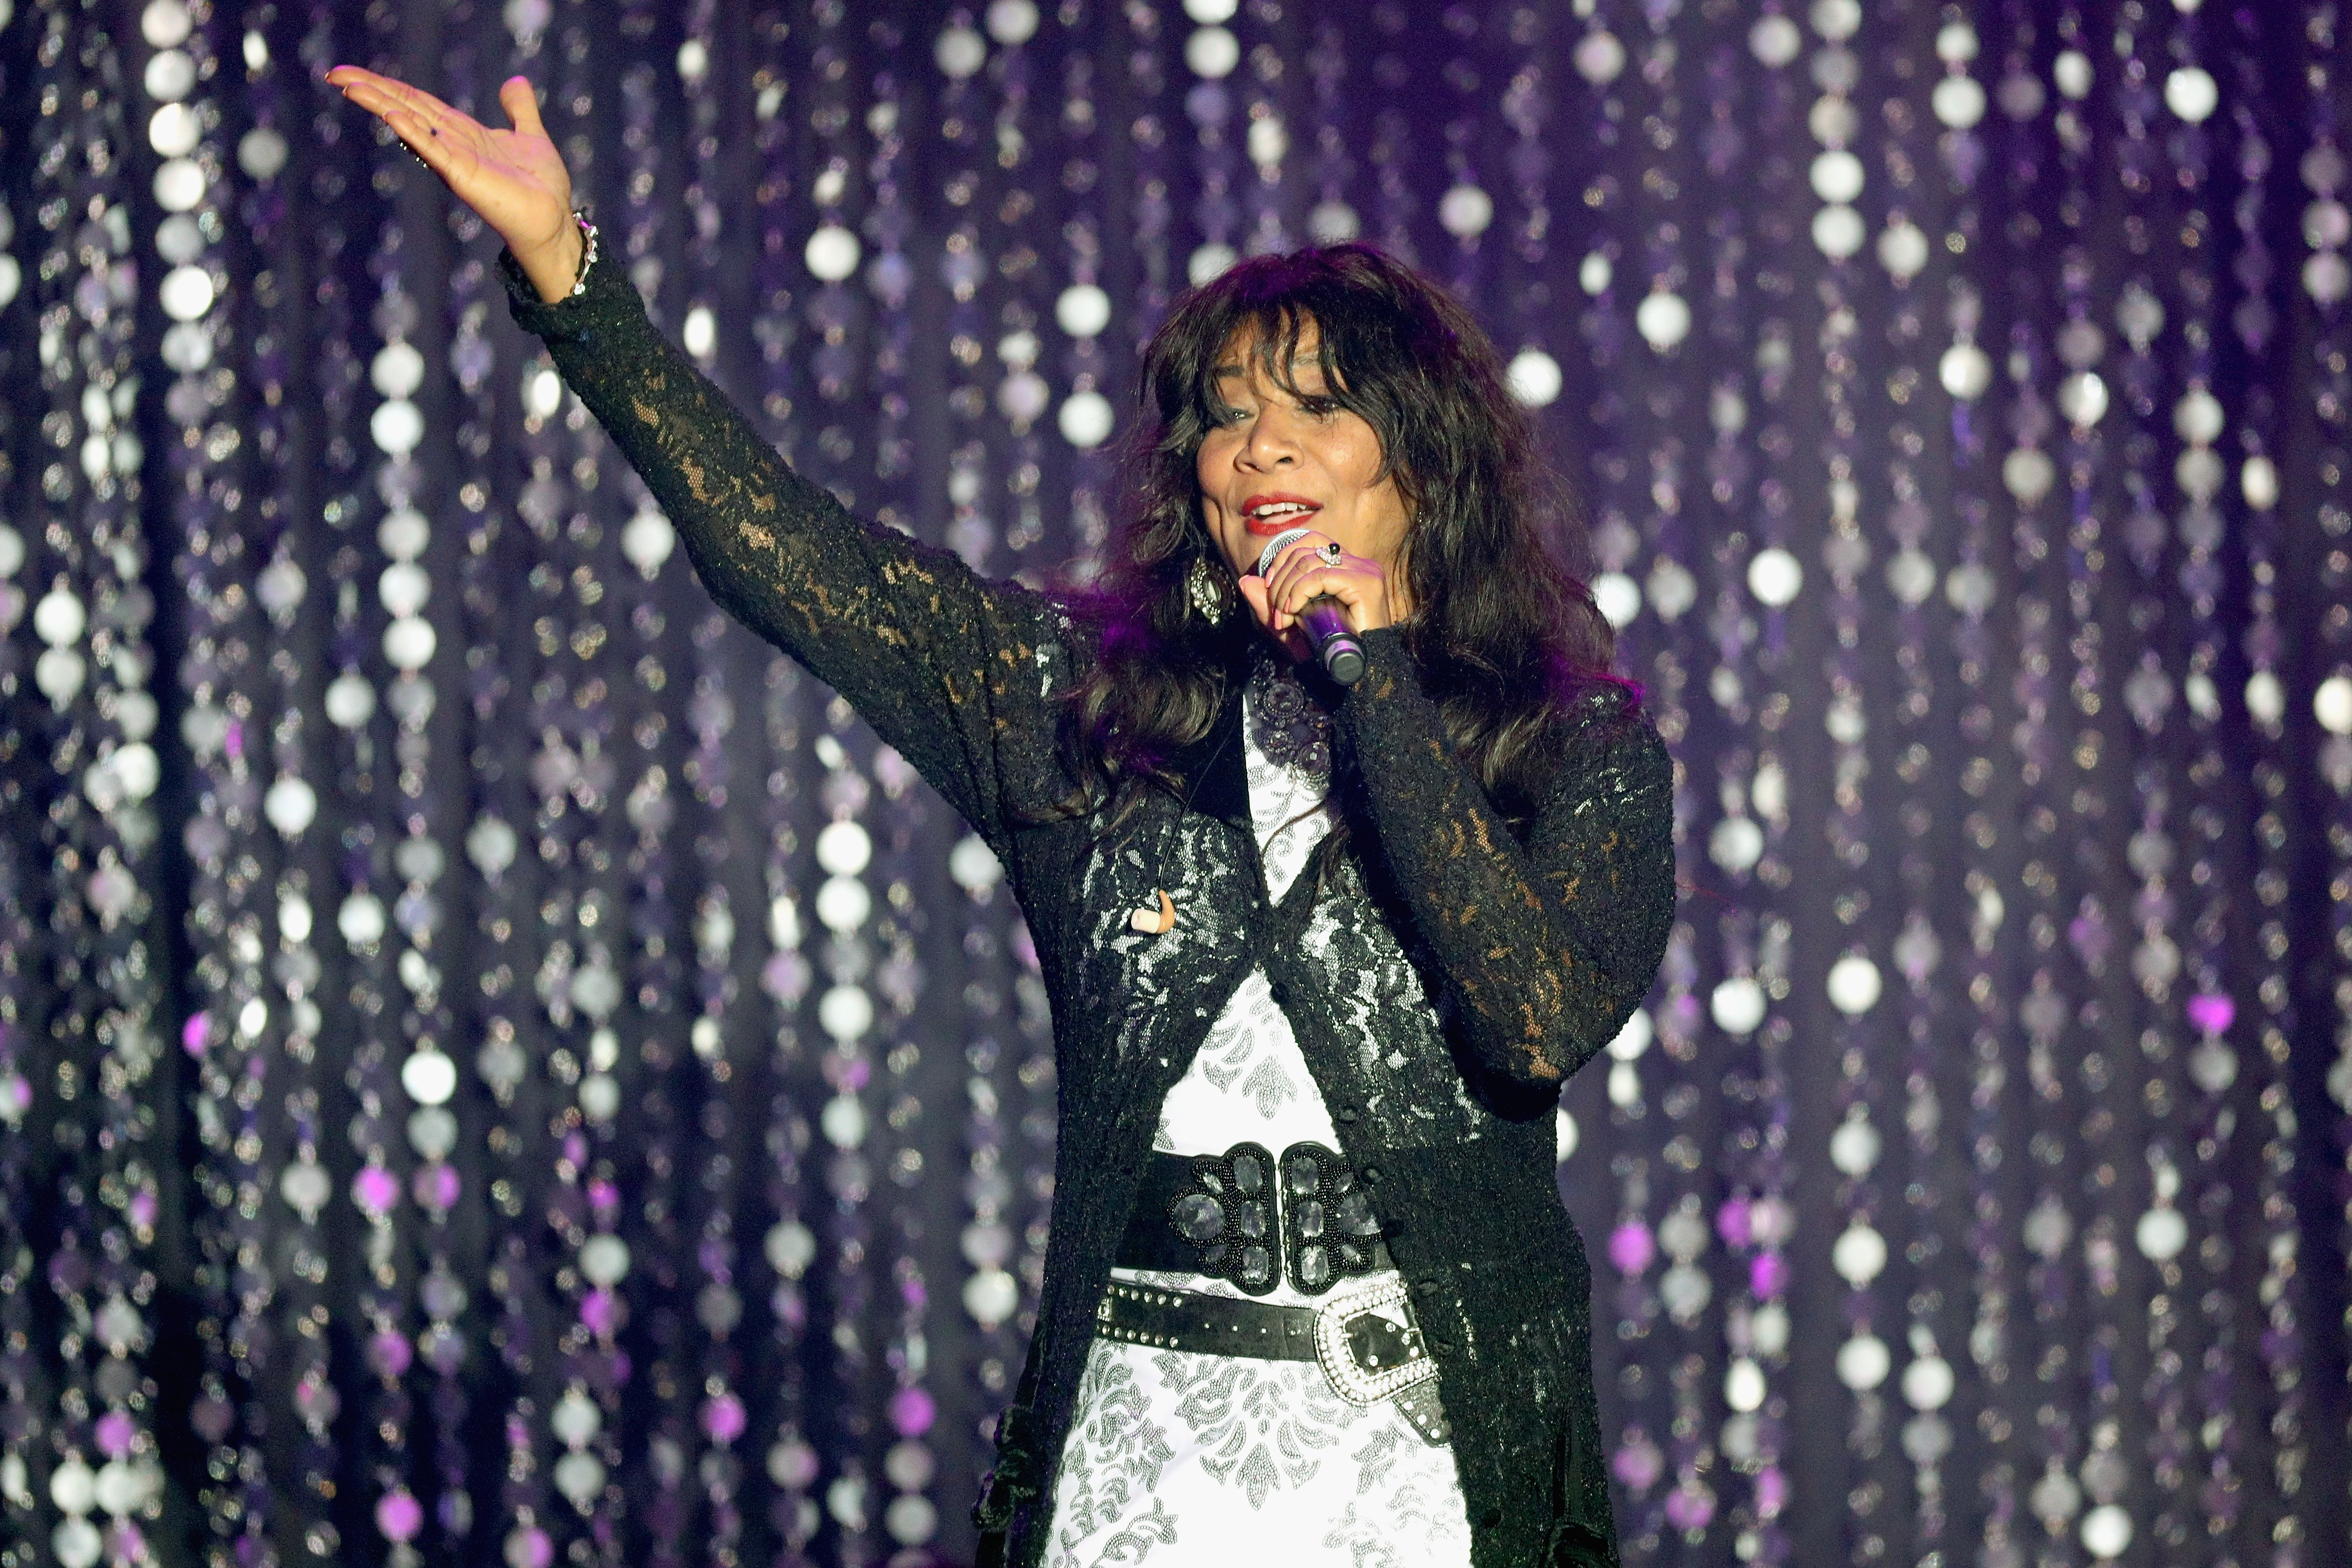 Joni Sledge of Sister Sledge appears on stage at the amfAR's 23rd Cinema Against AIDS Gala at Hotel du Cap-Eden-Roc on May 19, 2016 in Cap d'Antibes, France